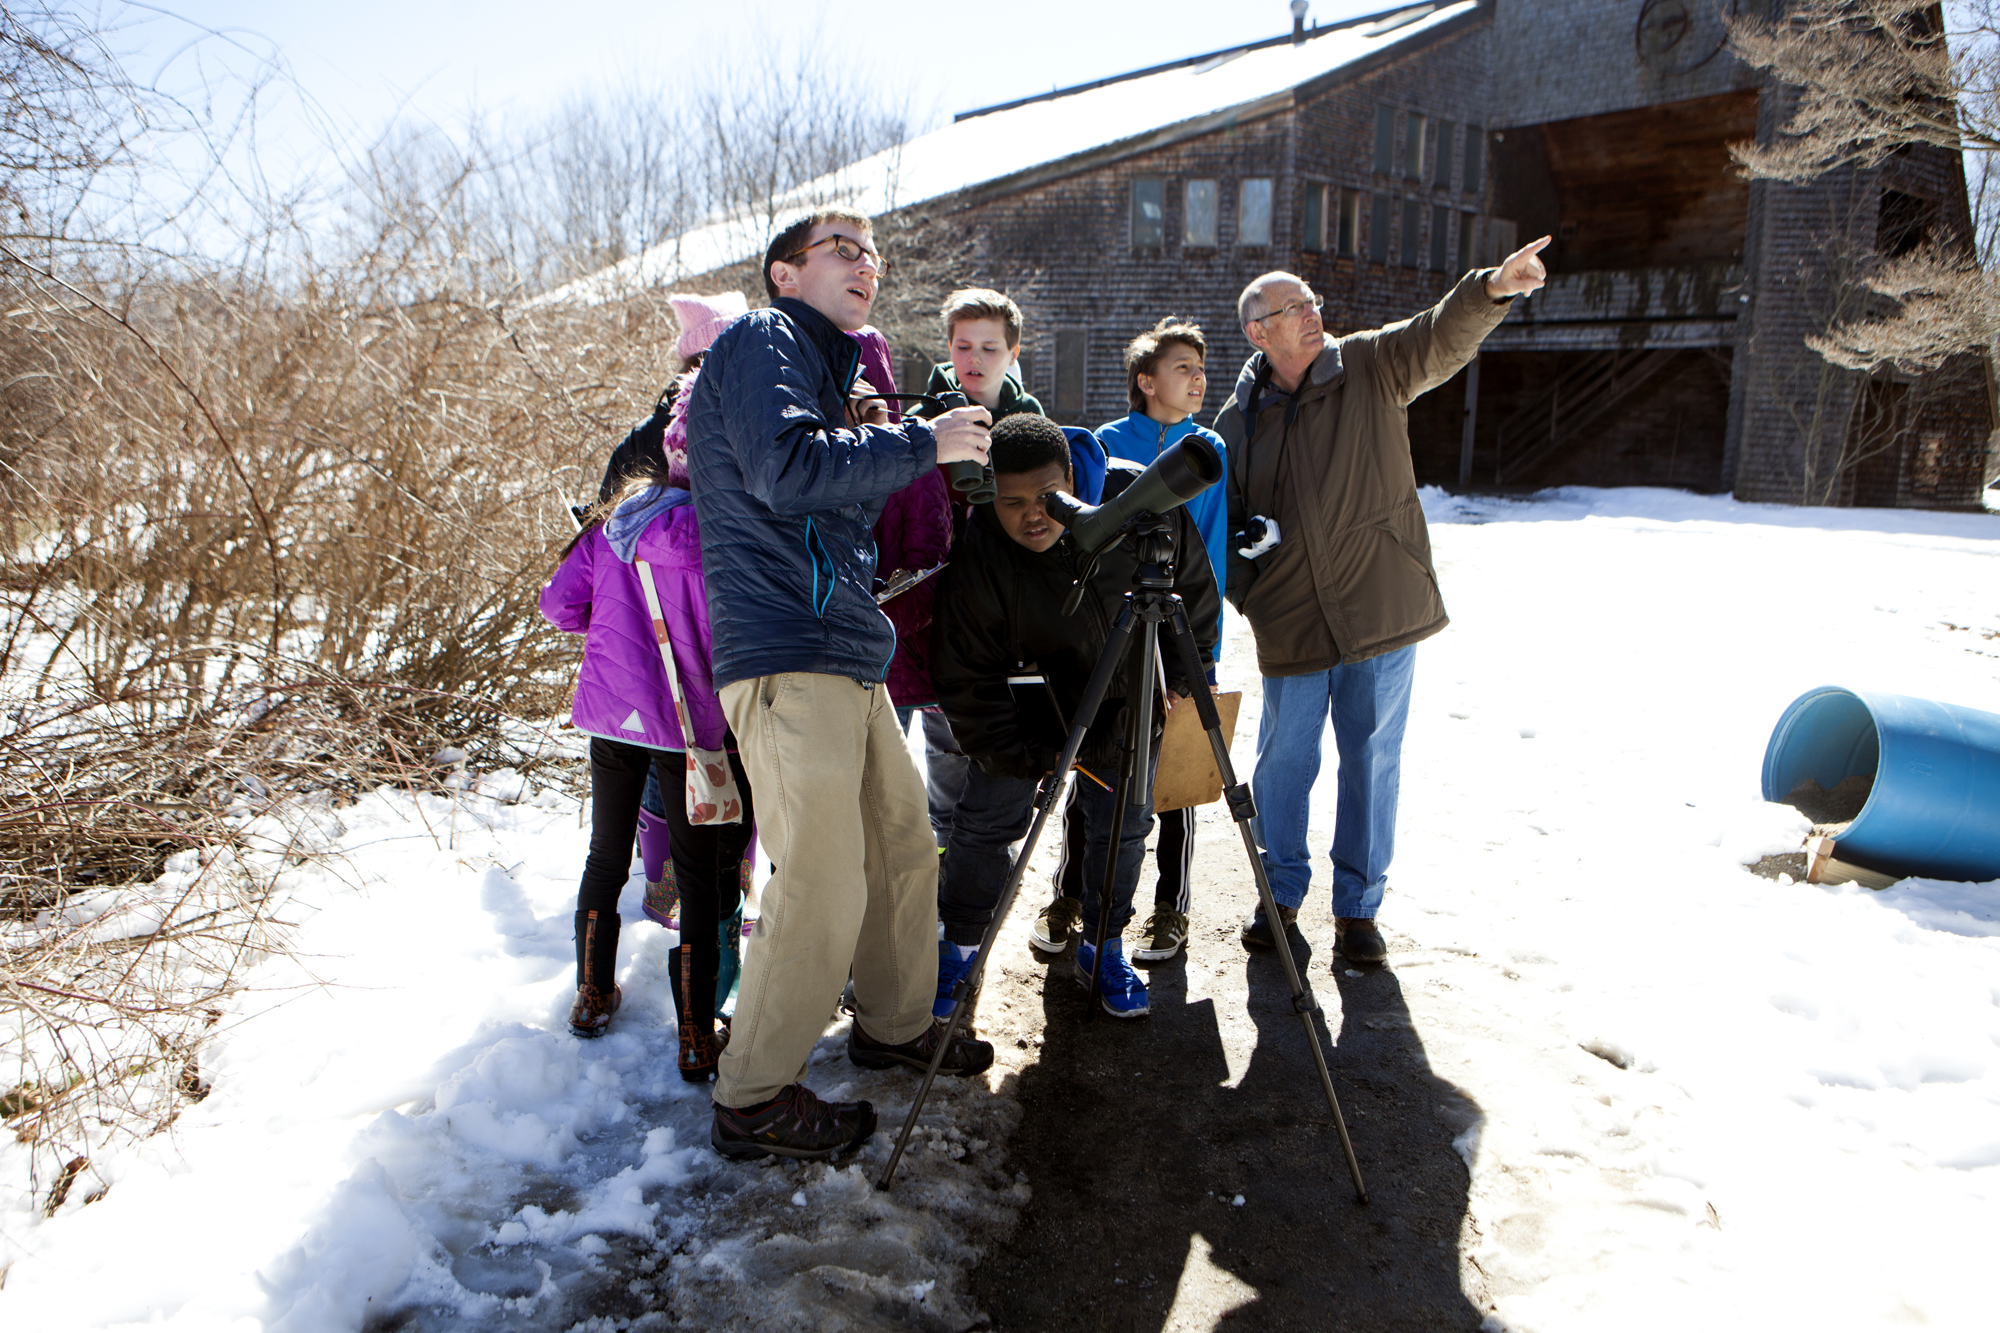 Maine Audubon Staff Naturalist Doug Hitchcox leads a bird walk for King Middle School students at Gilsland Farm Audubon Center in Falmouth, Maine on April 3.